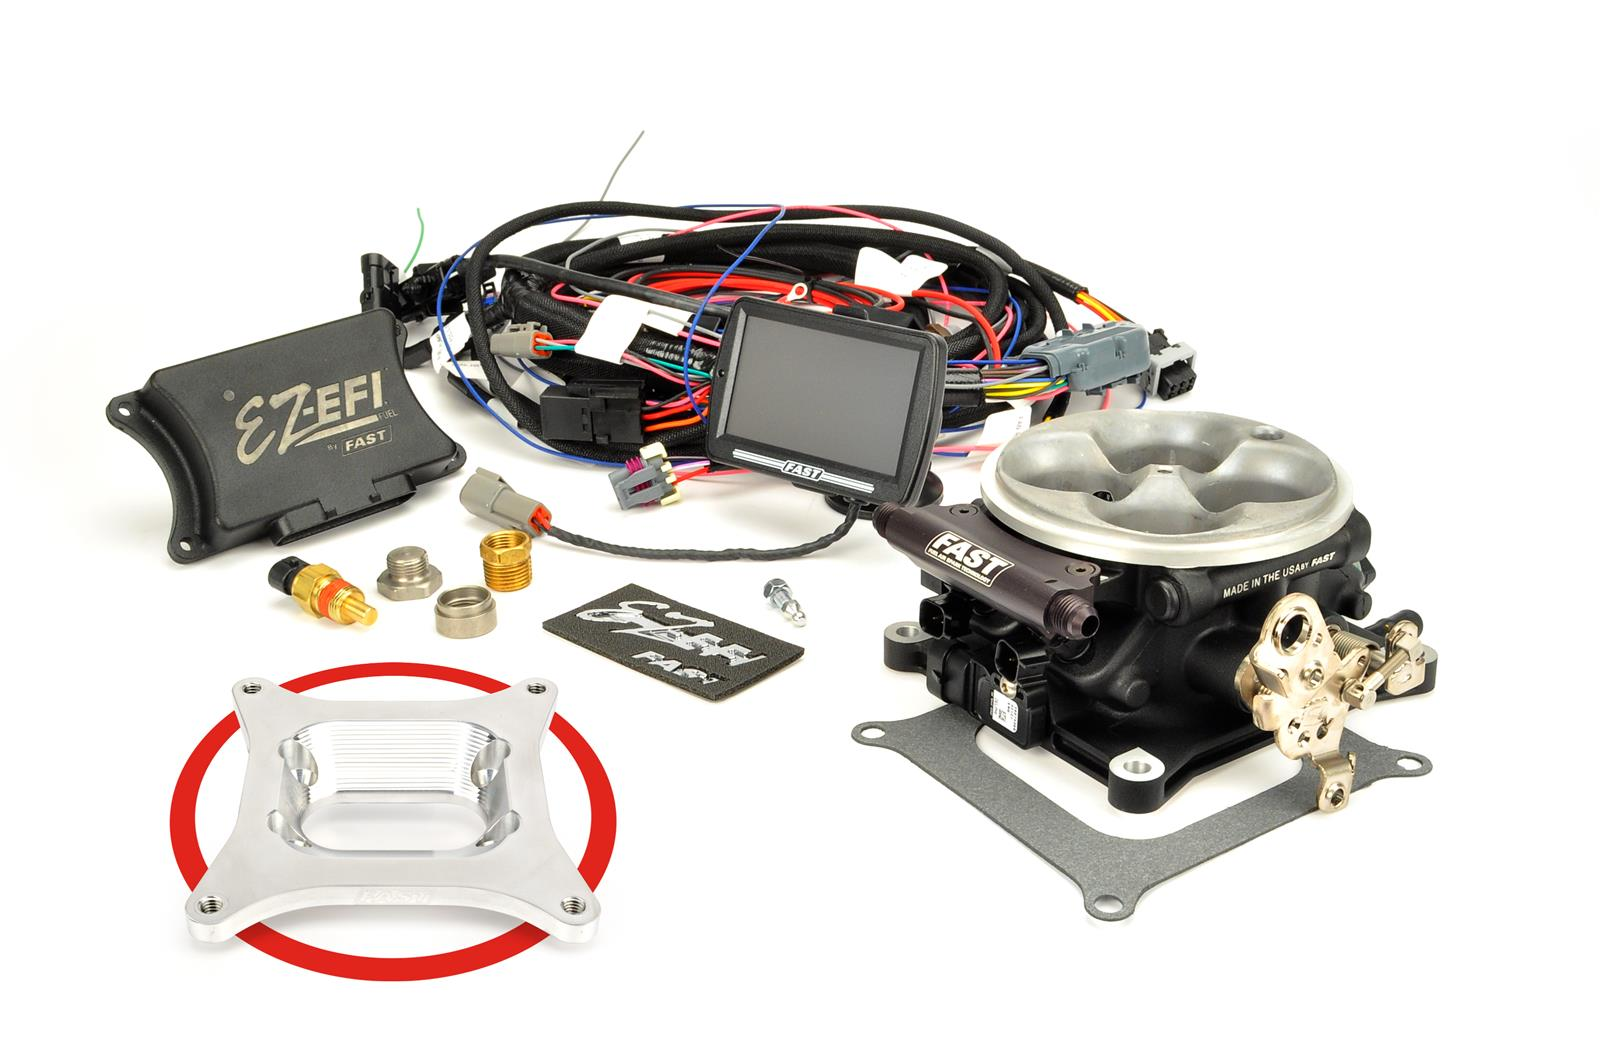 FAST EZ-EFI Self-Tuning Fuel Injection Systems 30294-06KIT - Free Shipping  on Orders Over $99 at Summit Racing